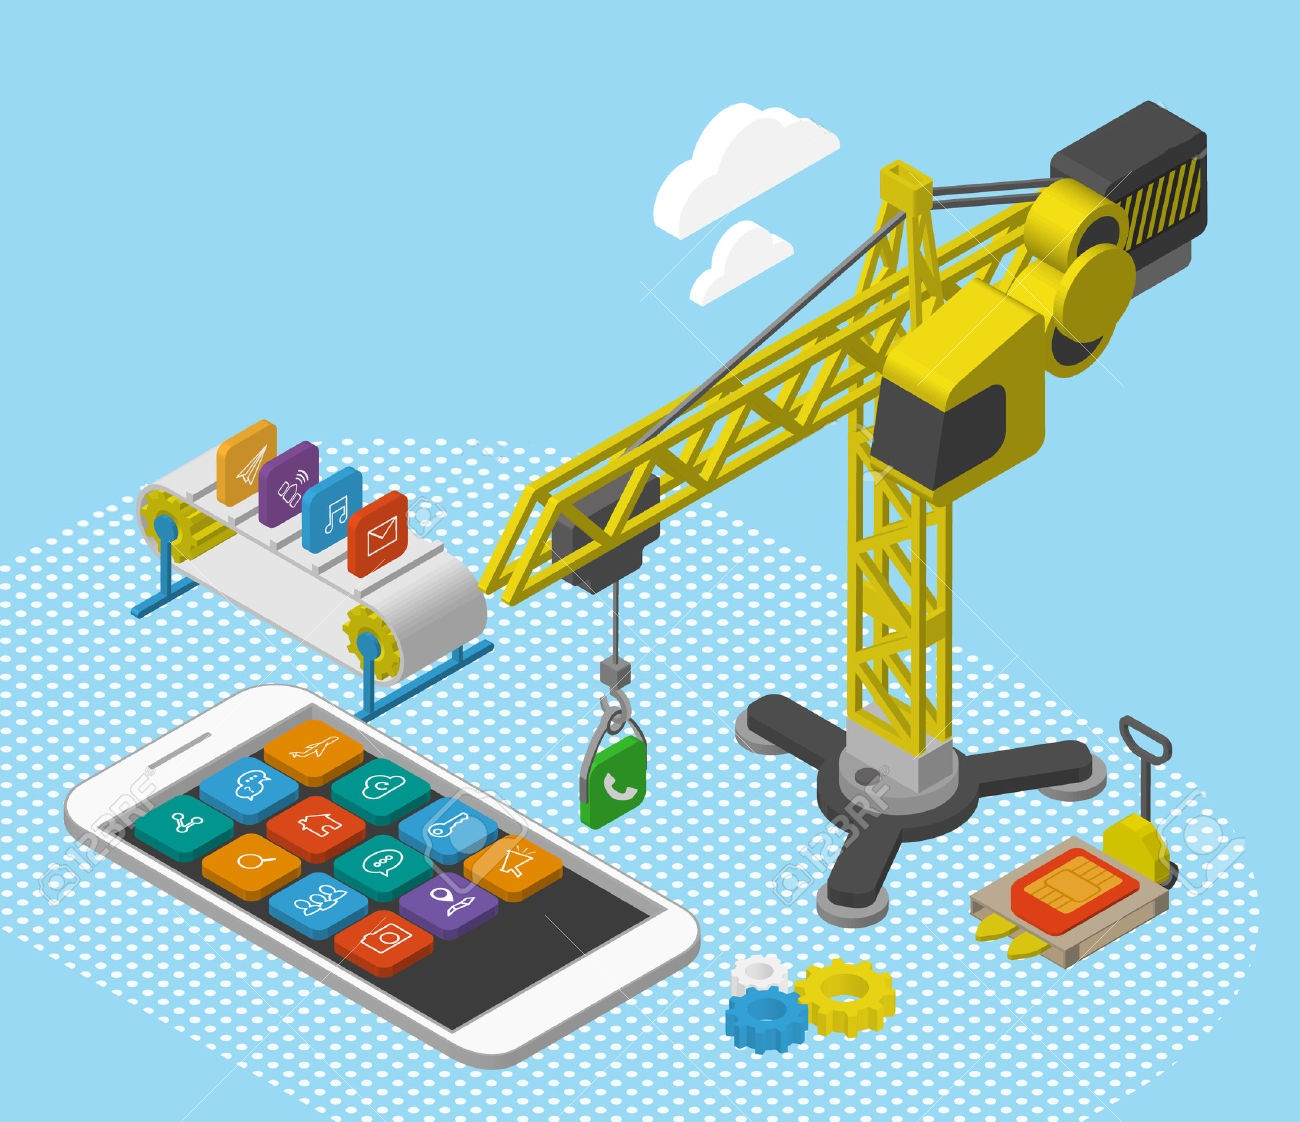 mobile-cranes-and-technology